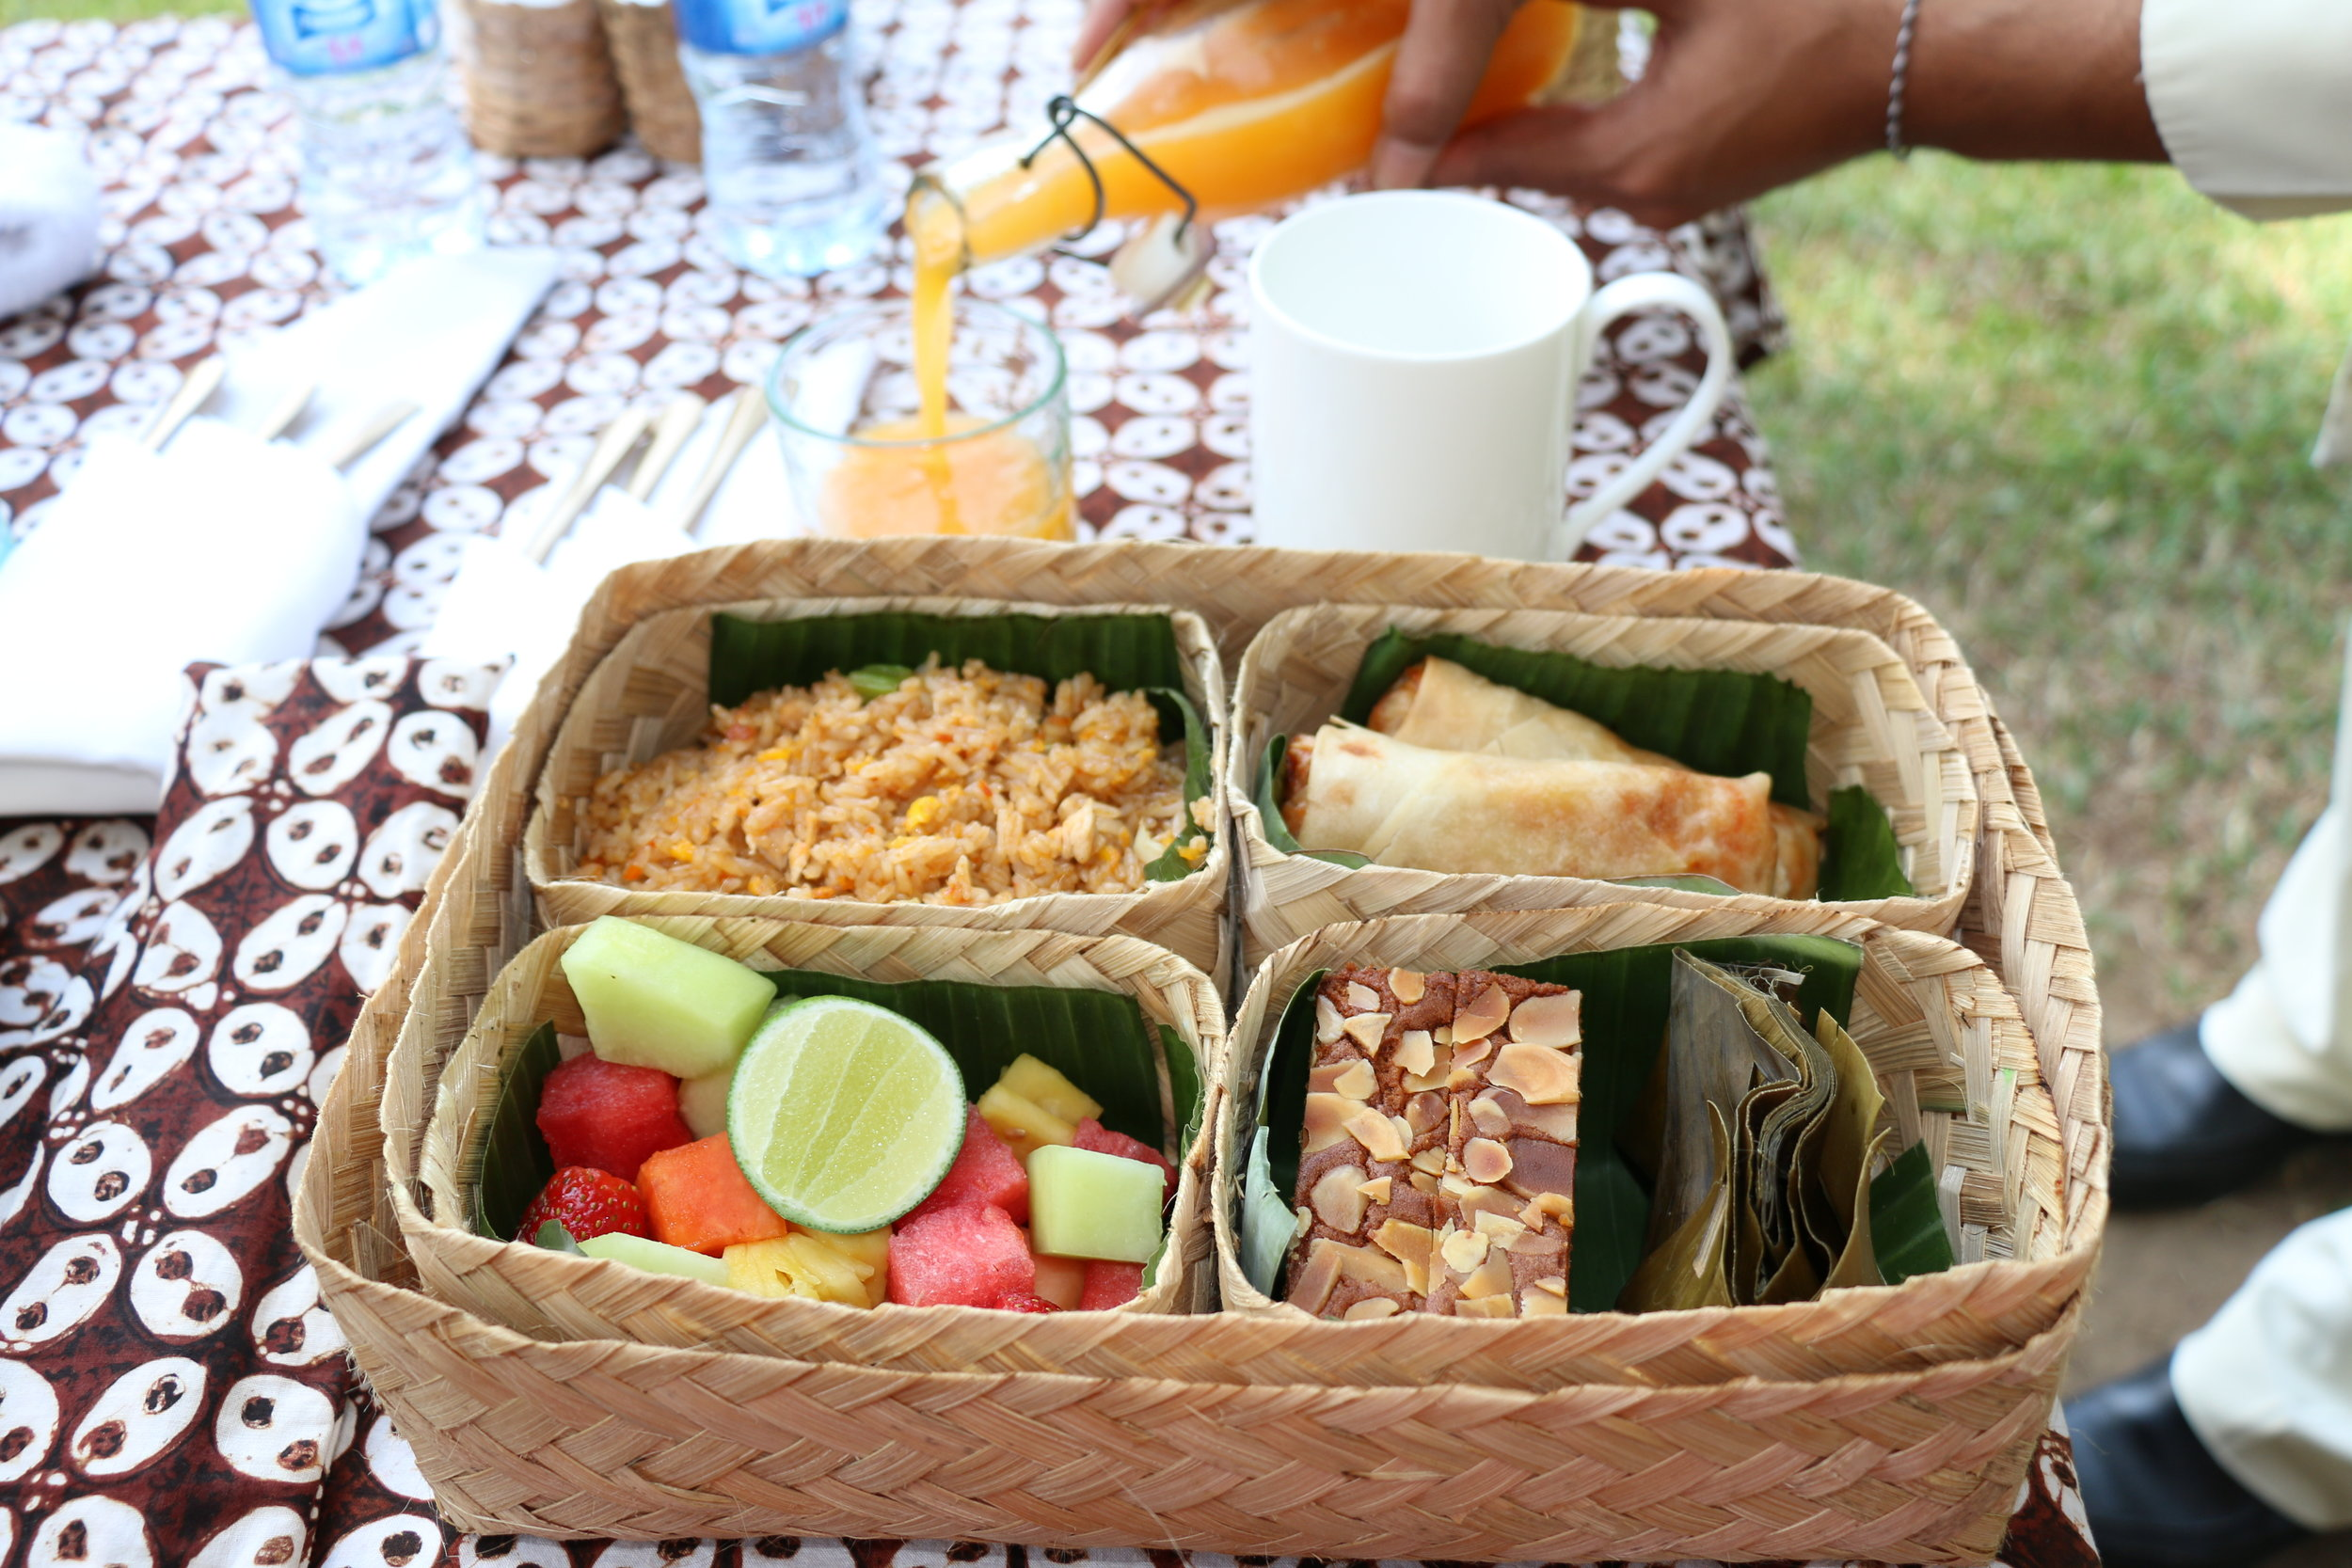 Indonesian Breakfast Set, which I selected as my choice,  comes with coffee, fresh mango orange juice, nasi goreng (fried rice), springrolls, fresh cut fruit, traditional pastries (some kind of cake with almonds and banana leaf wrapped sticky rice dumpling)